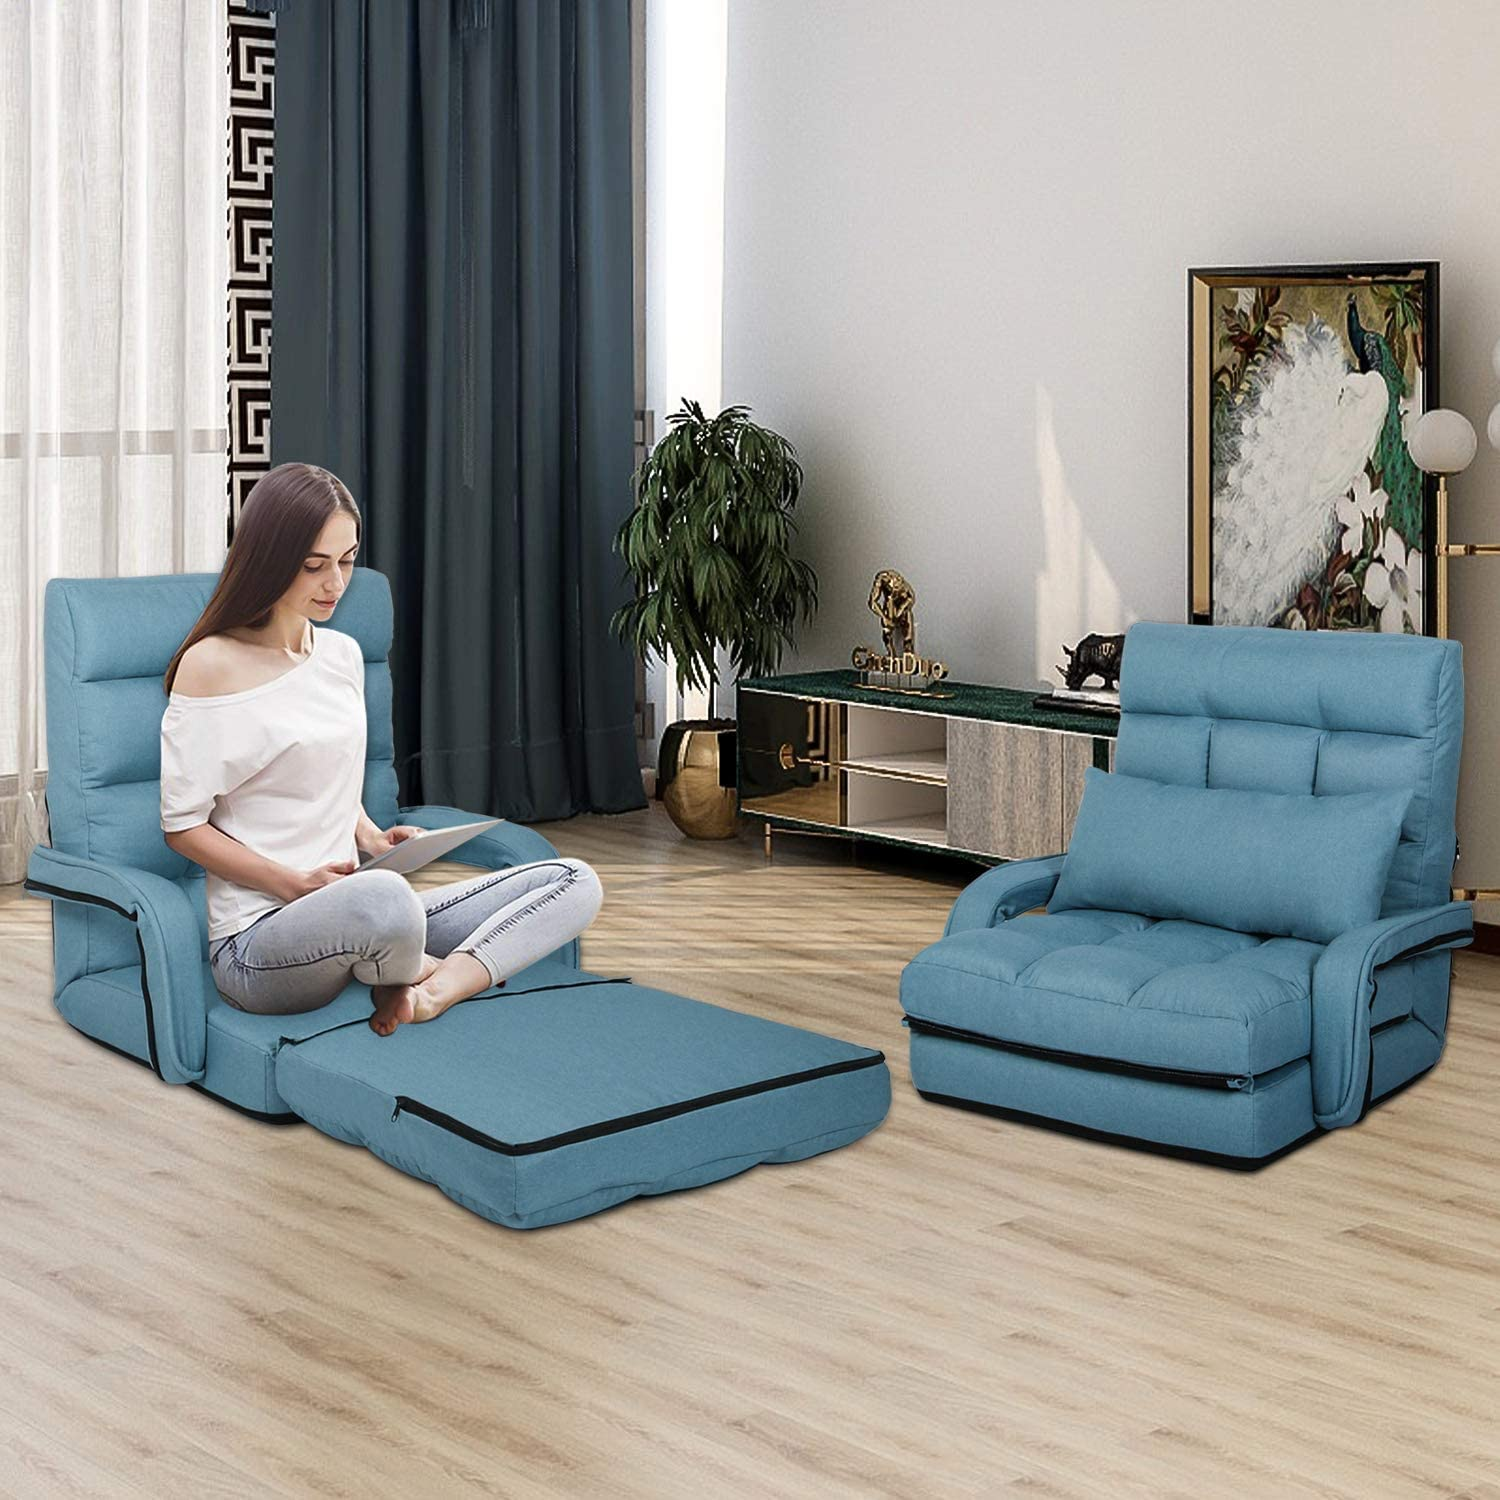 STHOUYN Chaise Lounge Indoor, Folding Floor Lazy Sofa Bed Chair 5-Position Adjustable Gaming Recliner Chair Comfortable Padded Seats with Armrests a Pillow, Chaise Couch Living Room (Blue)